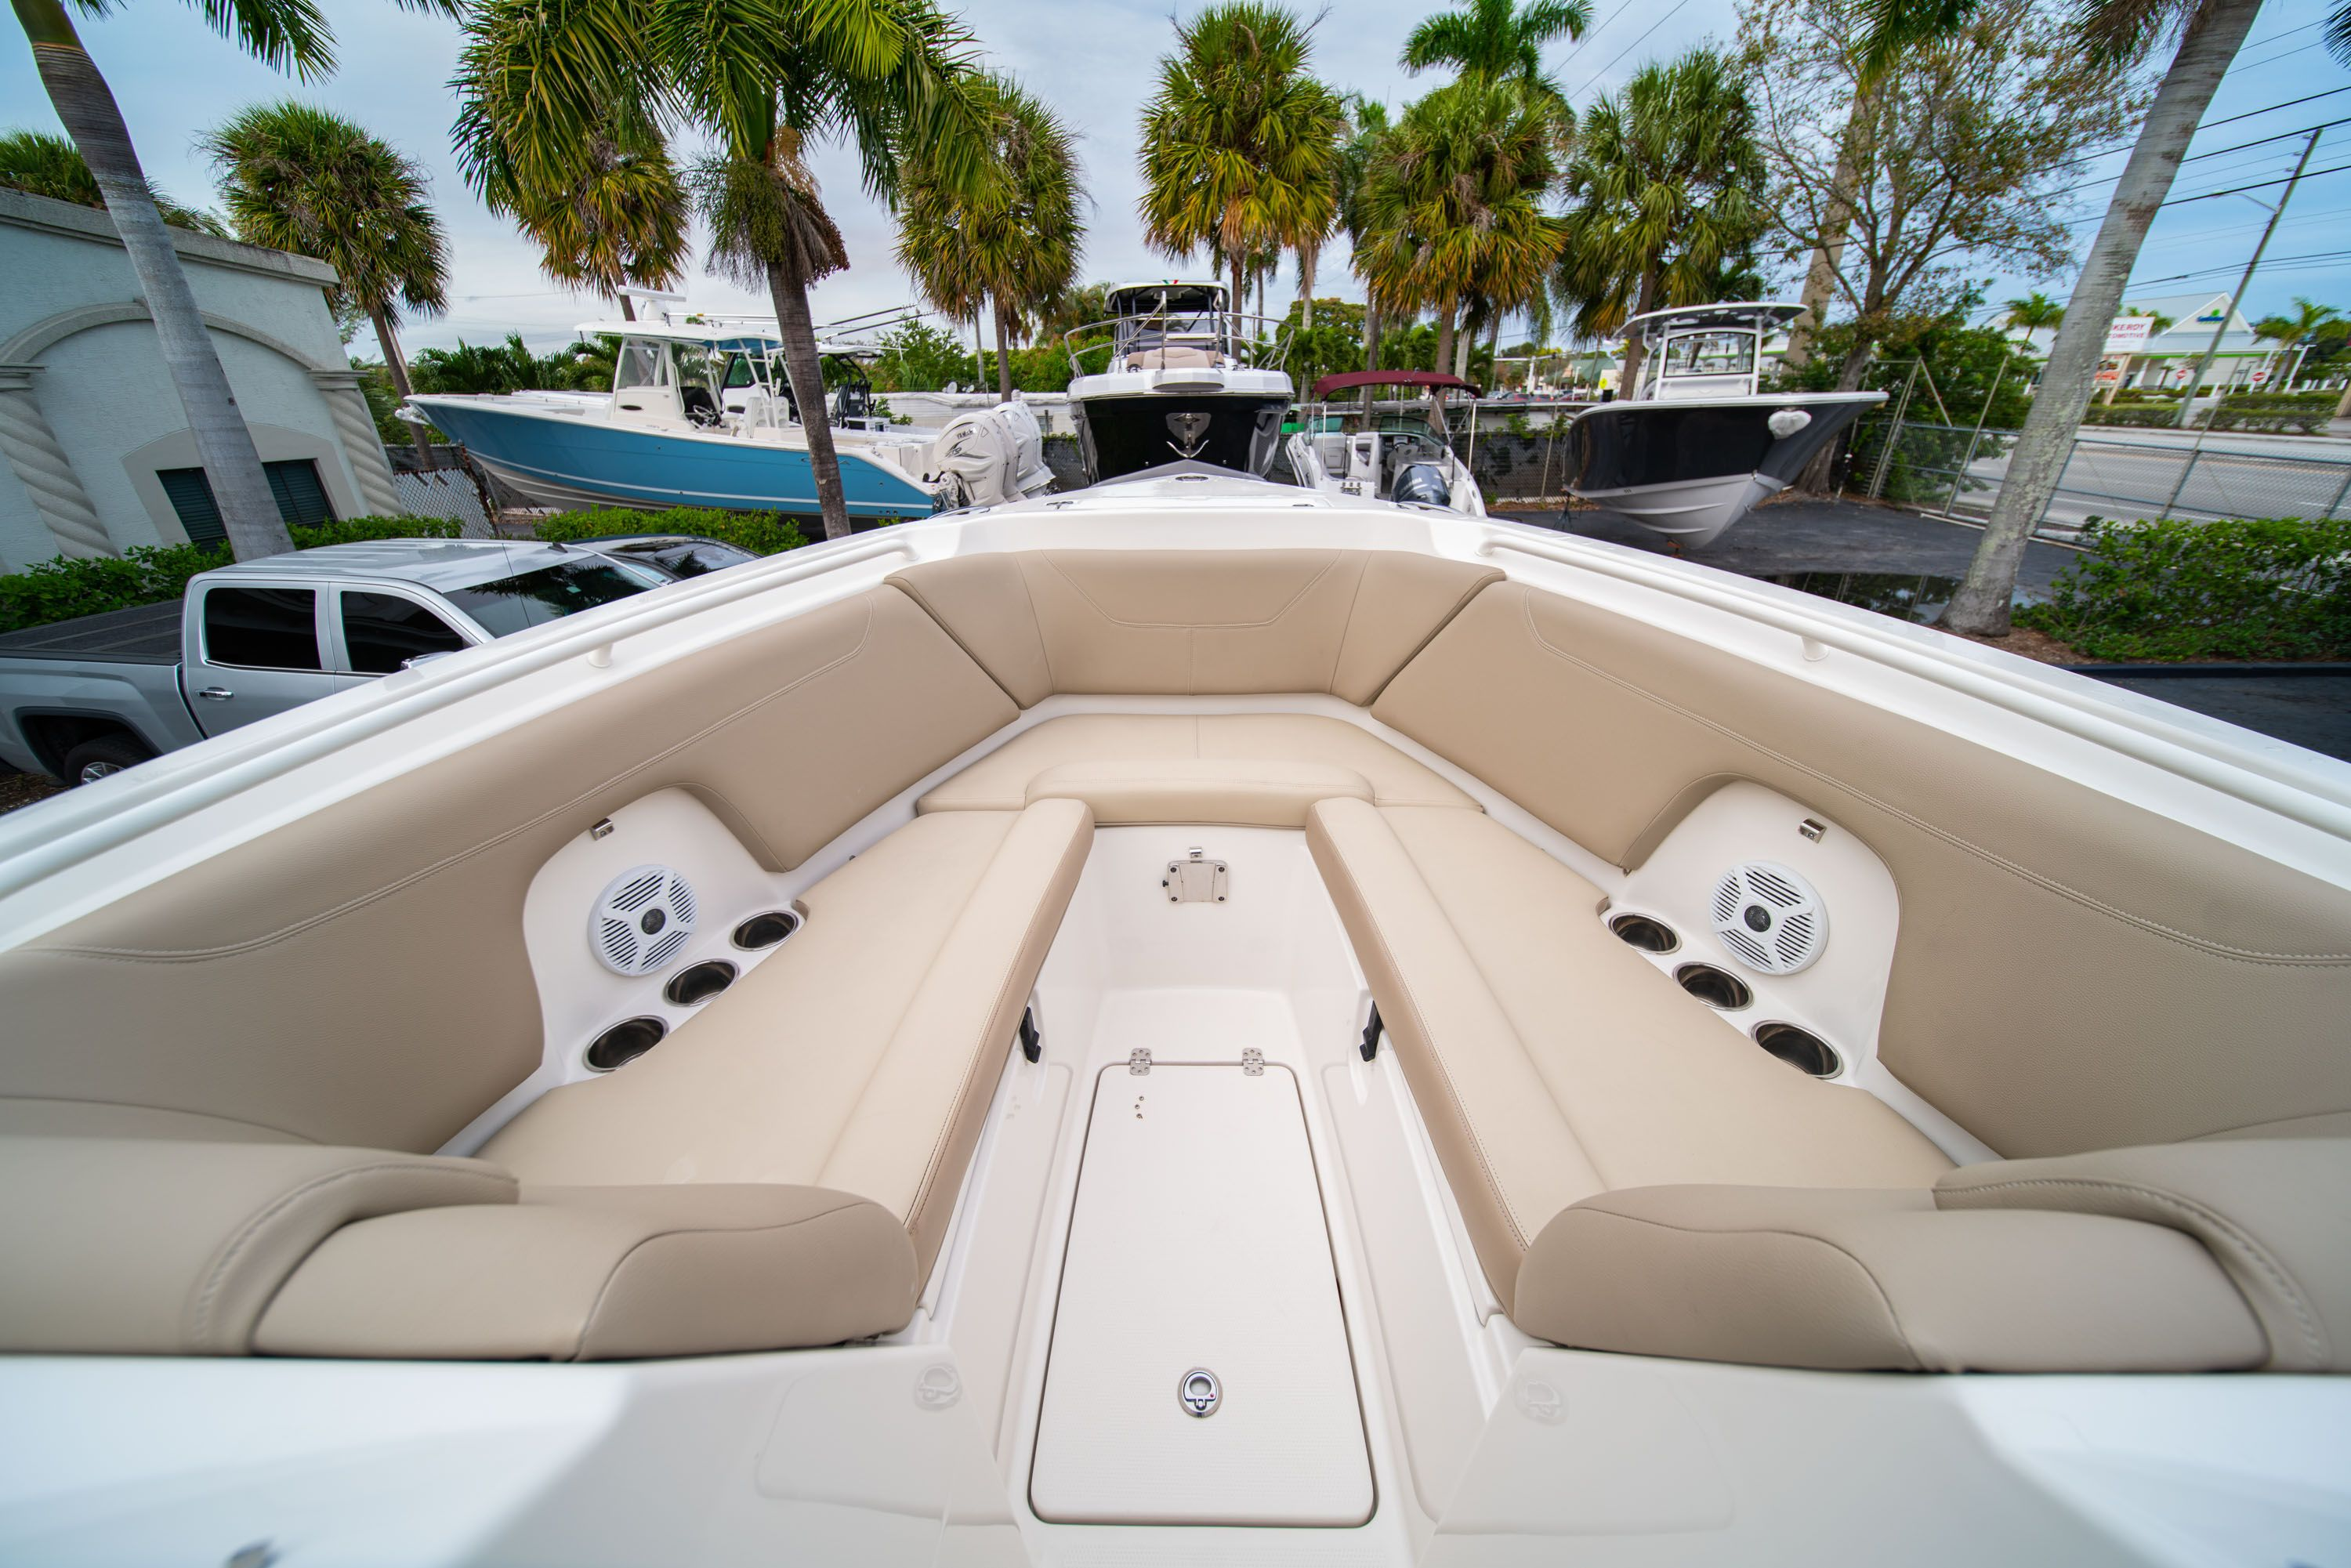 Thumbnail 61 for Used 2017 Sailfish 275 Dual Console boat for sale in West Palm Beach, FL